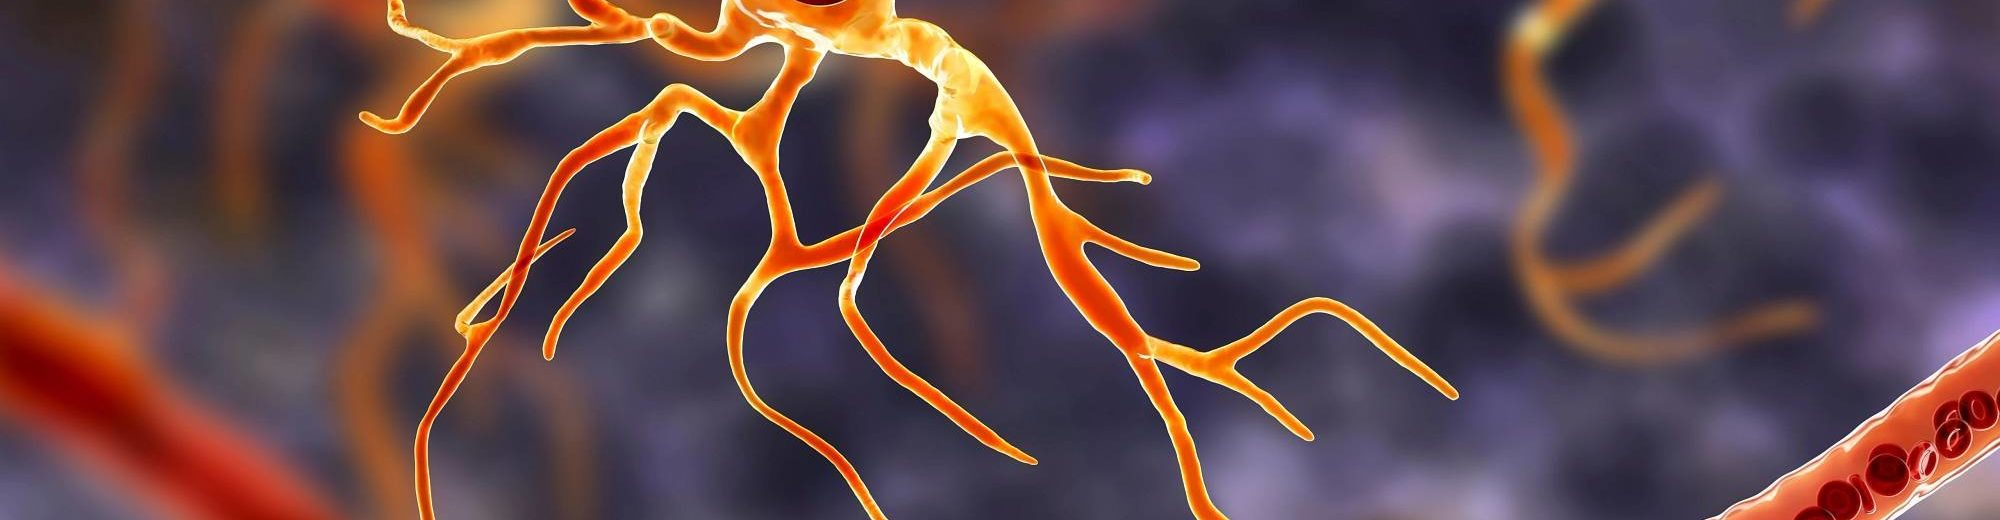 3D illustration of human brain neural cell Astrocyte - CNS Clinical Trials   Amarex